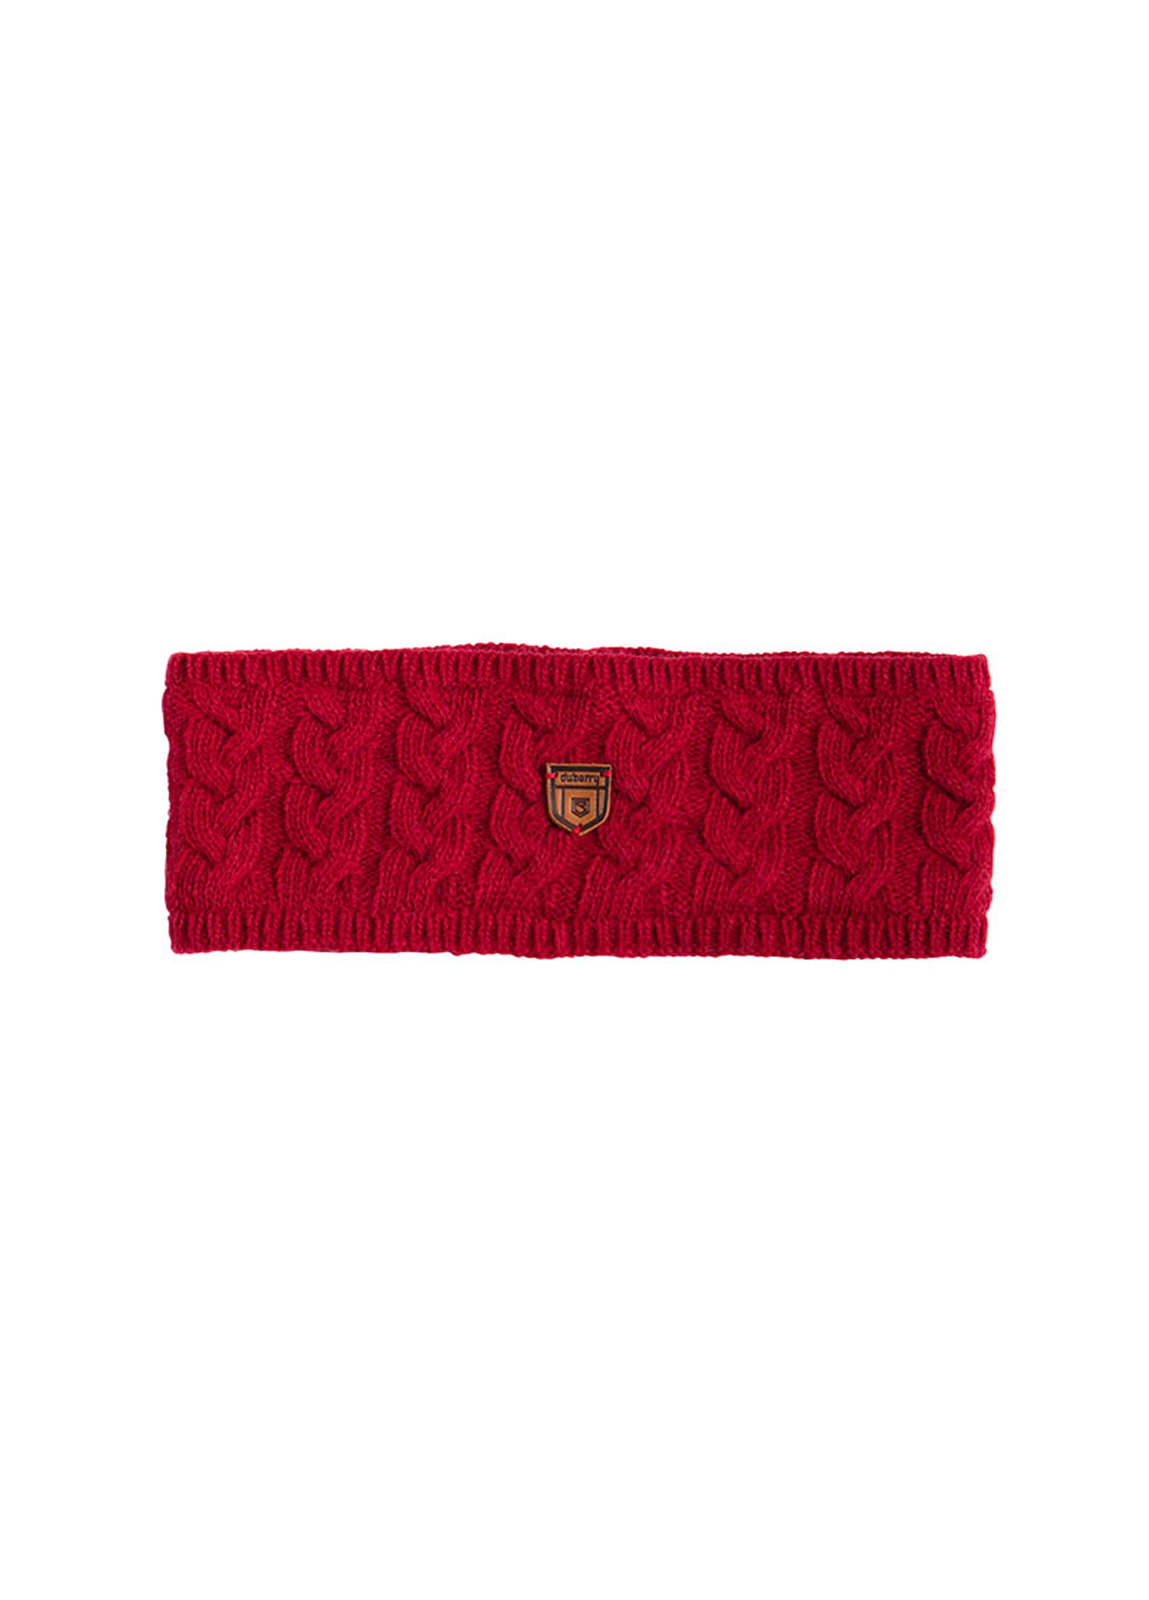 Dubarry_ Farmleigh Knitted Headband - Mist_Image_1